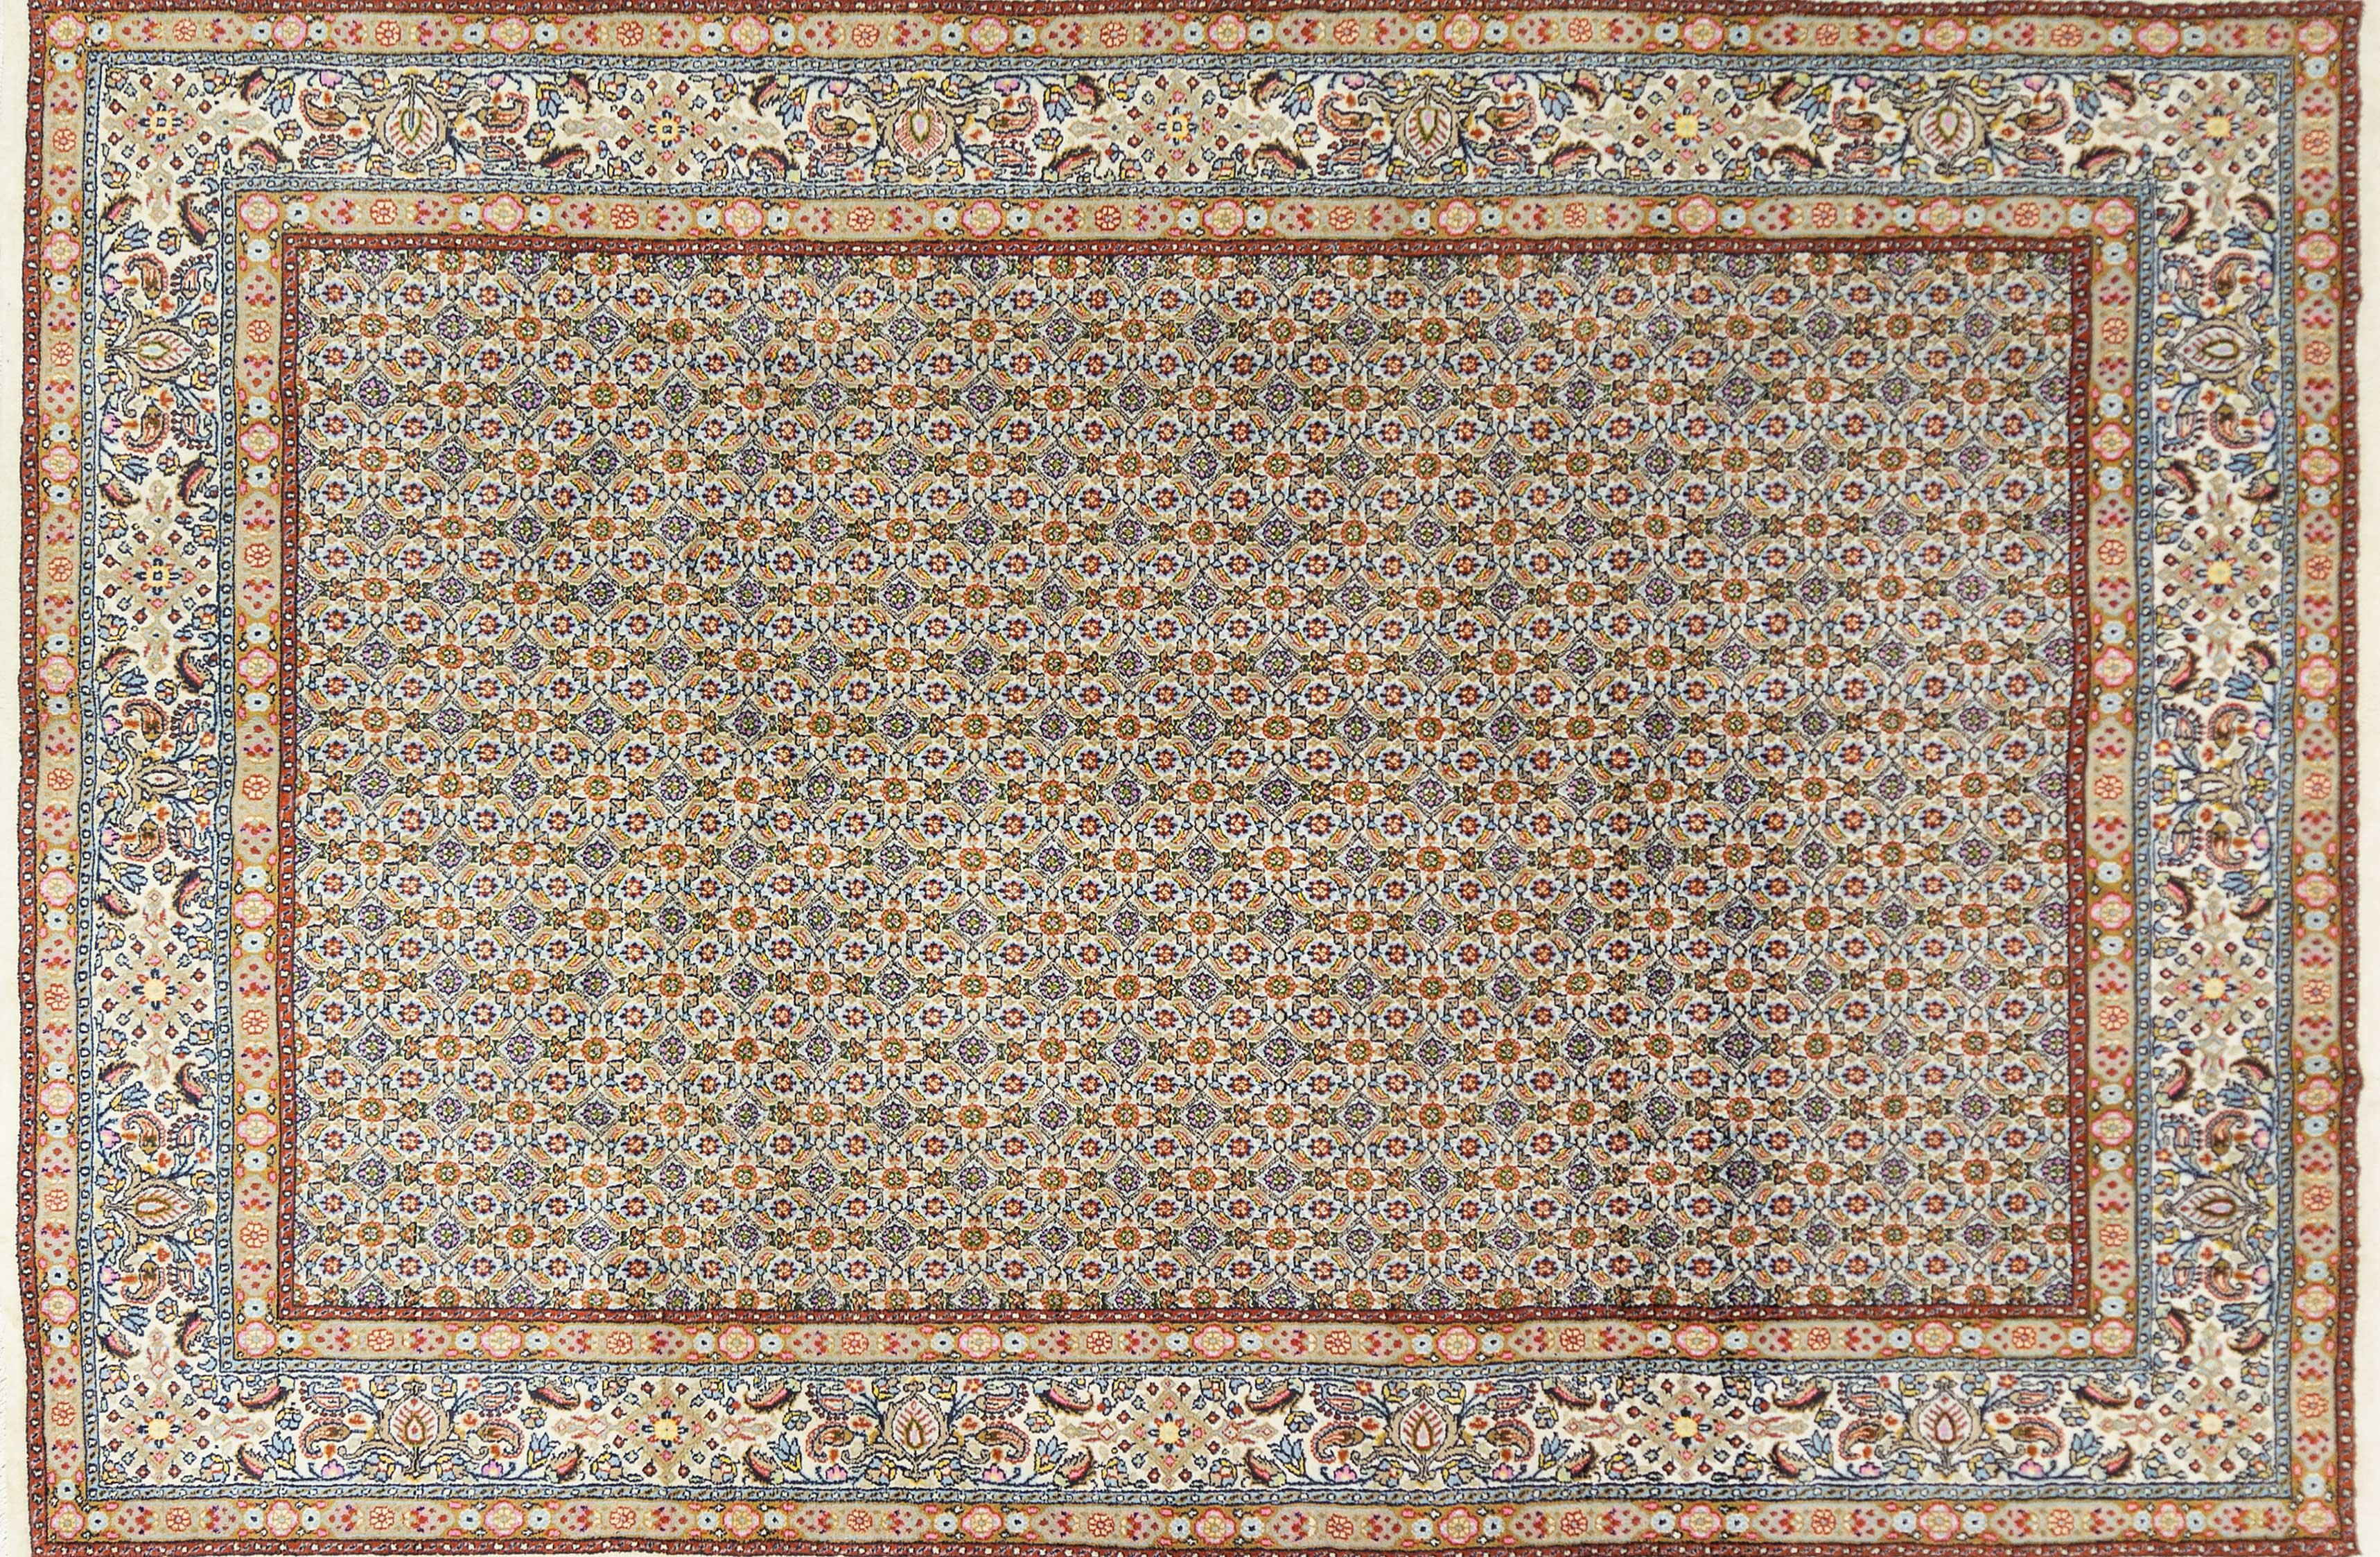 A Persian Hand Knotted Moud Carpet, 302 x 200